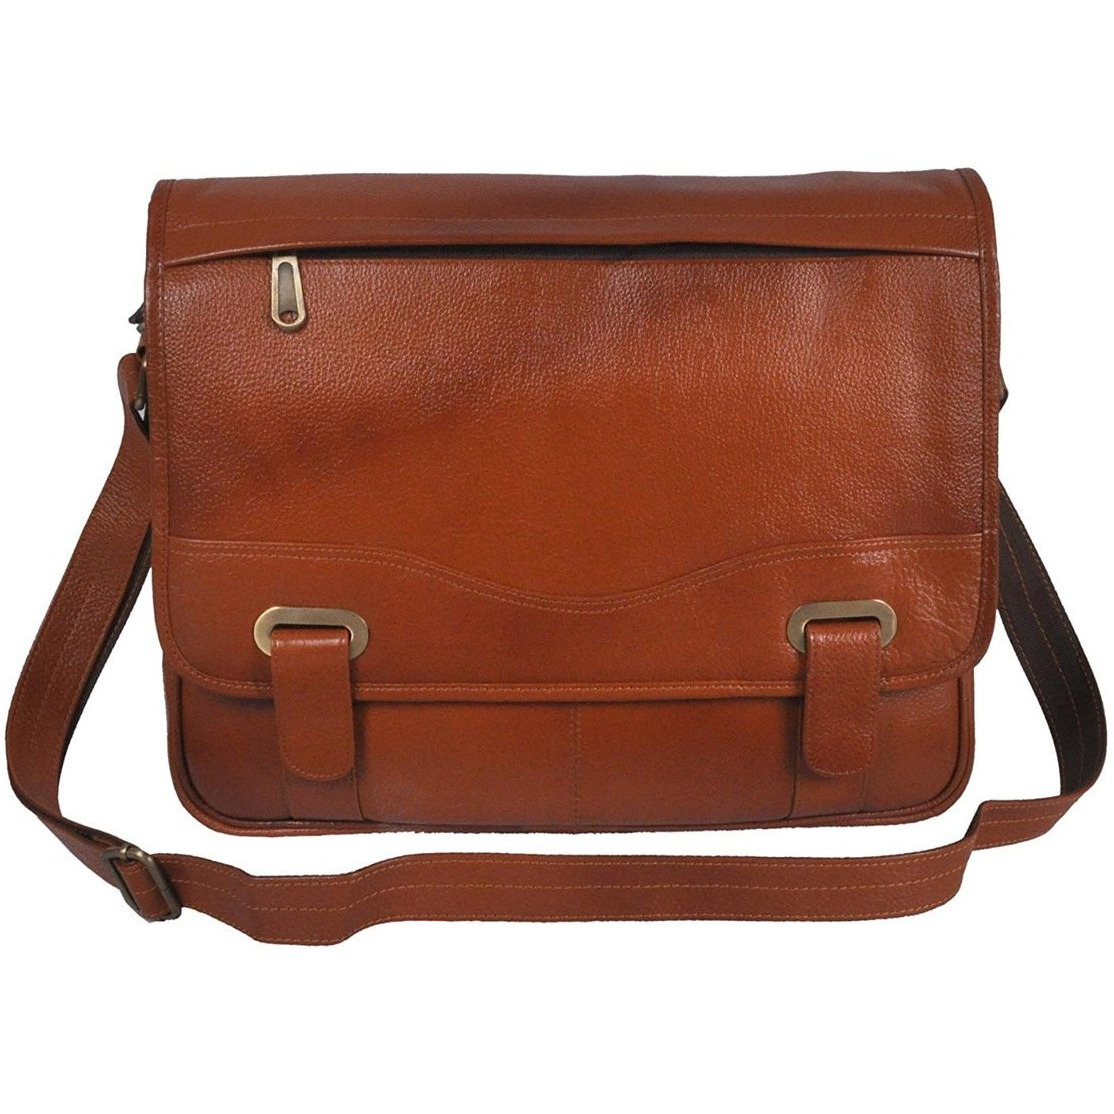 Bagjack - Bellatrix-I is one of our most eye-catching tan color leather laptop bag.